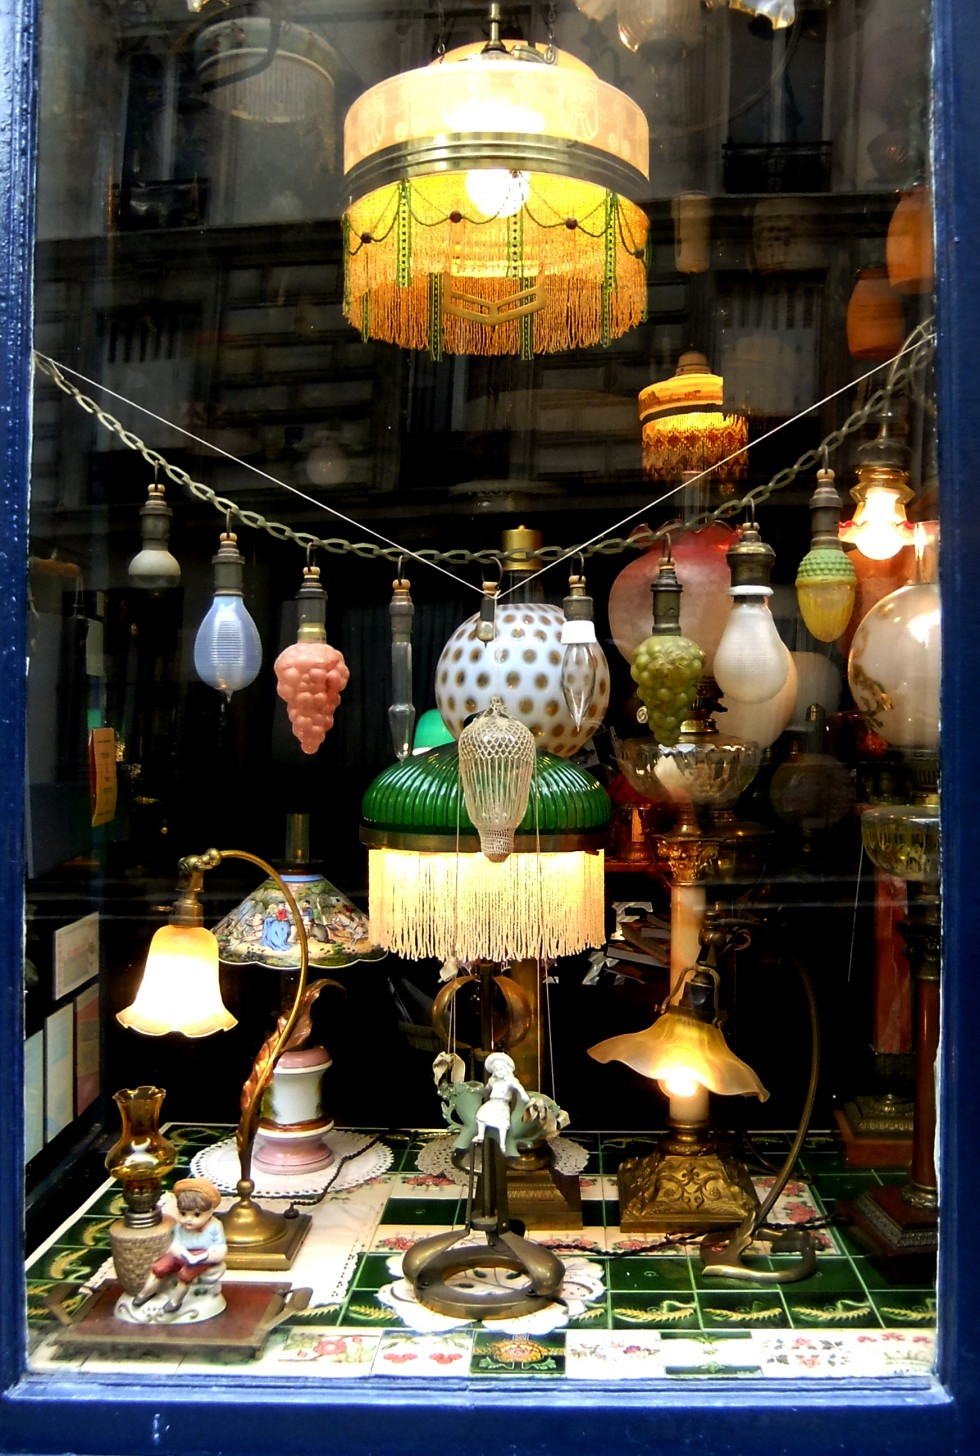 Here You Have The Top 5 Lighting Stores In Paris 4 Lighting Stores Here You Have The Top 5 Lighting Stores In Paris Here You Have The Top 5 Lighting Stores In Paris 4